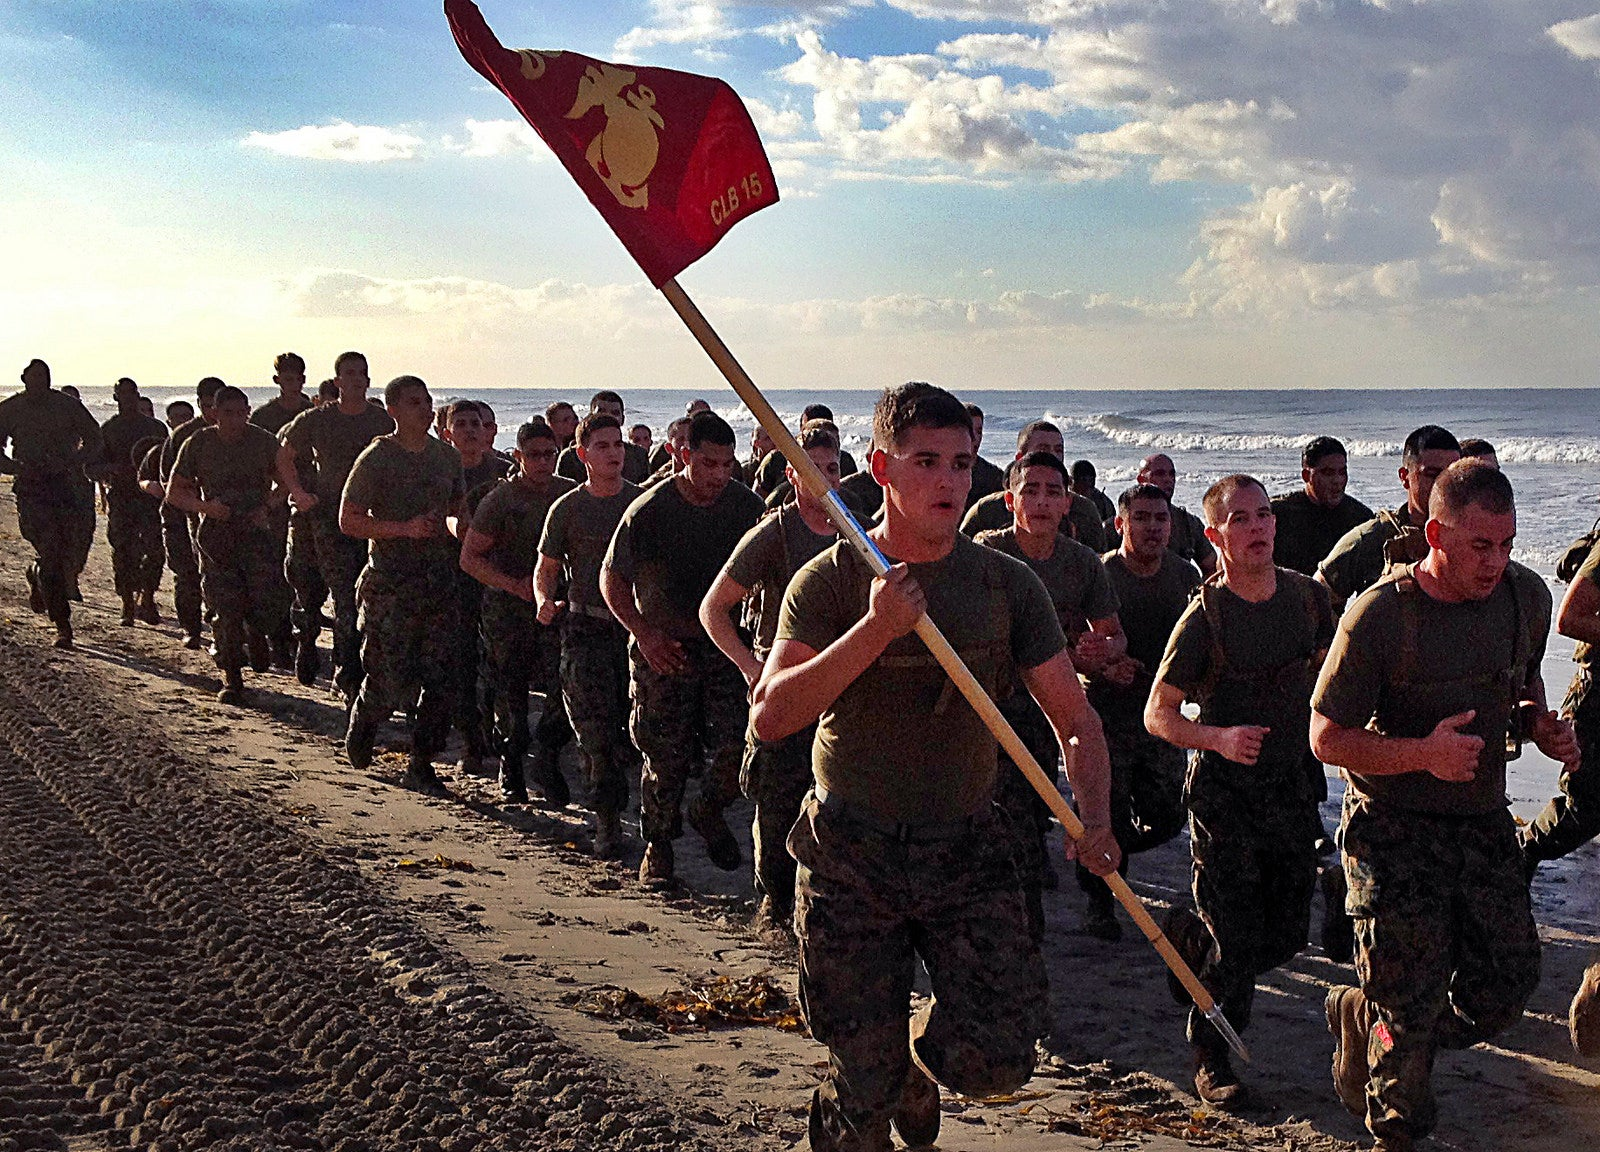 Marine Corps cancels physical fitness test requirement over COVID-19